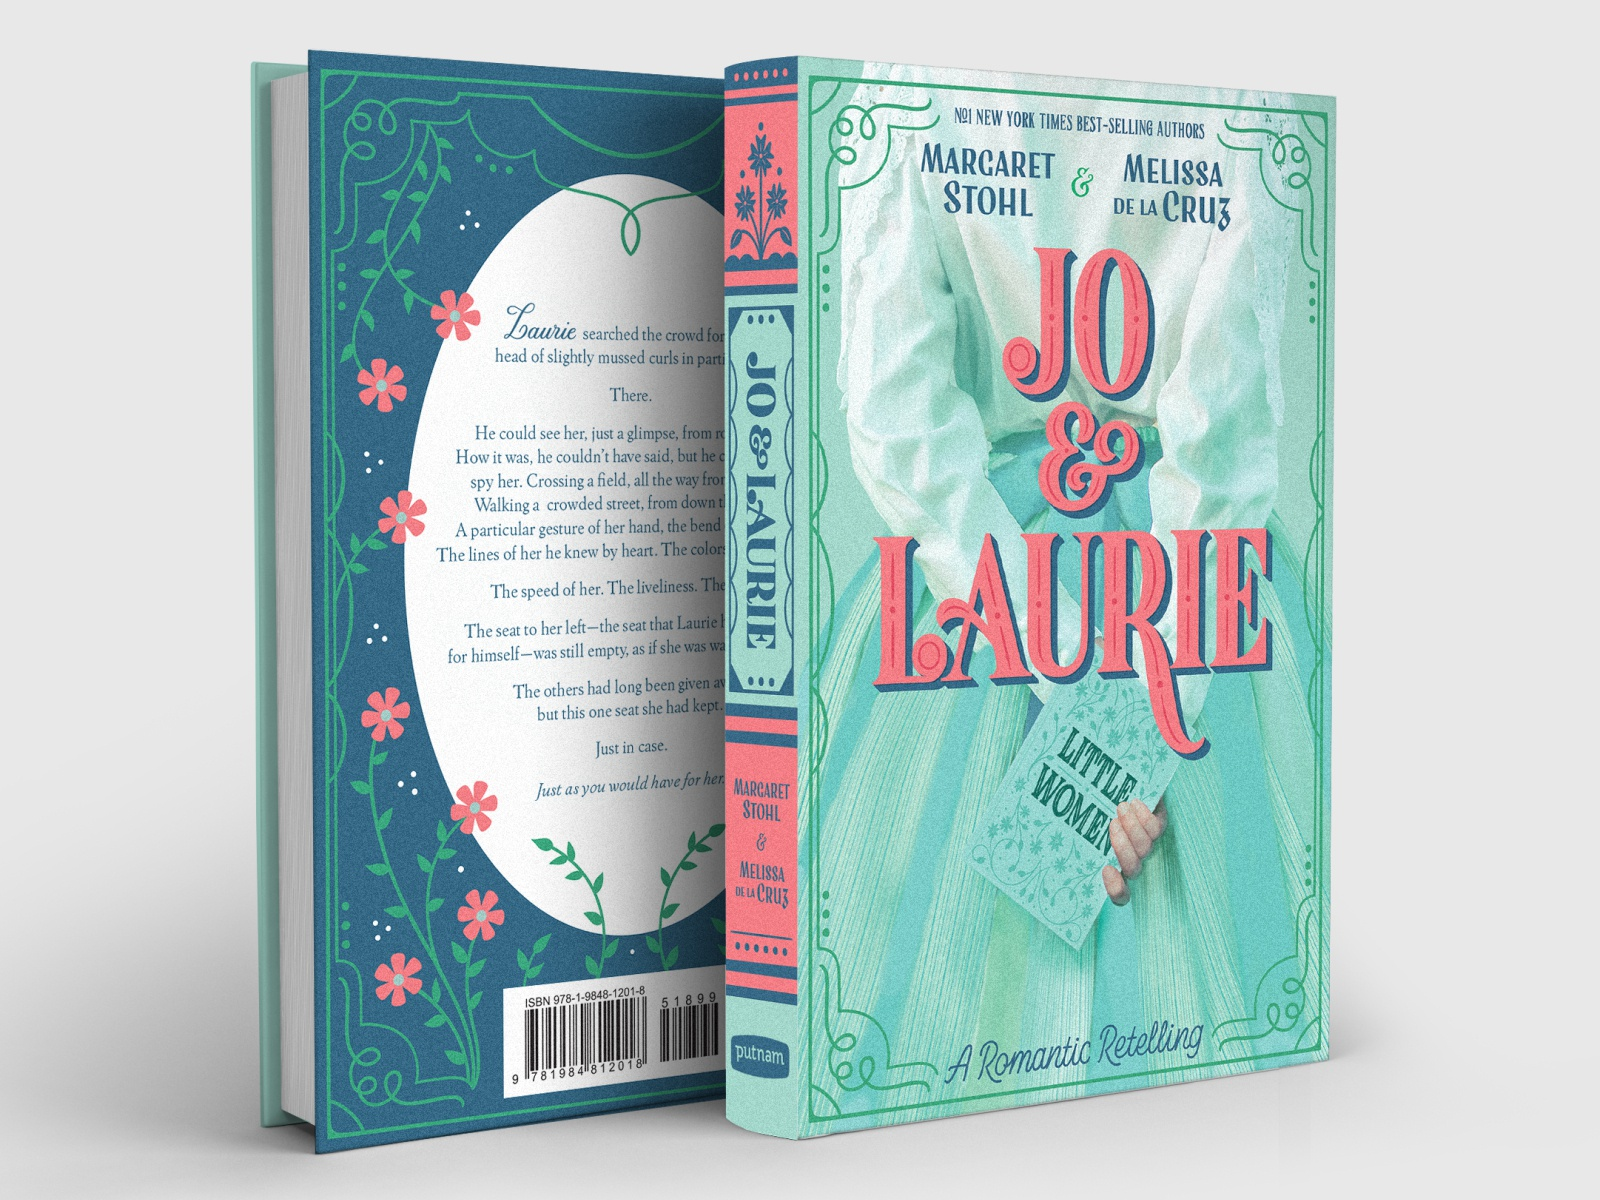 Jo & Laurie Book Jacket Design & Lettering by Katie Johnson on Dribbble